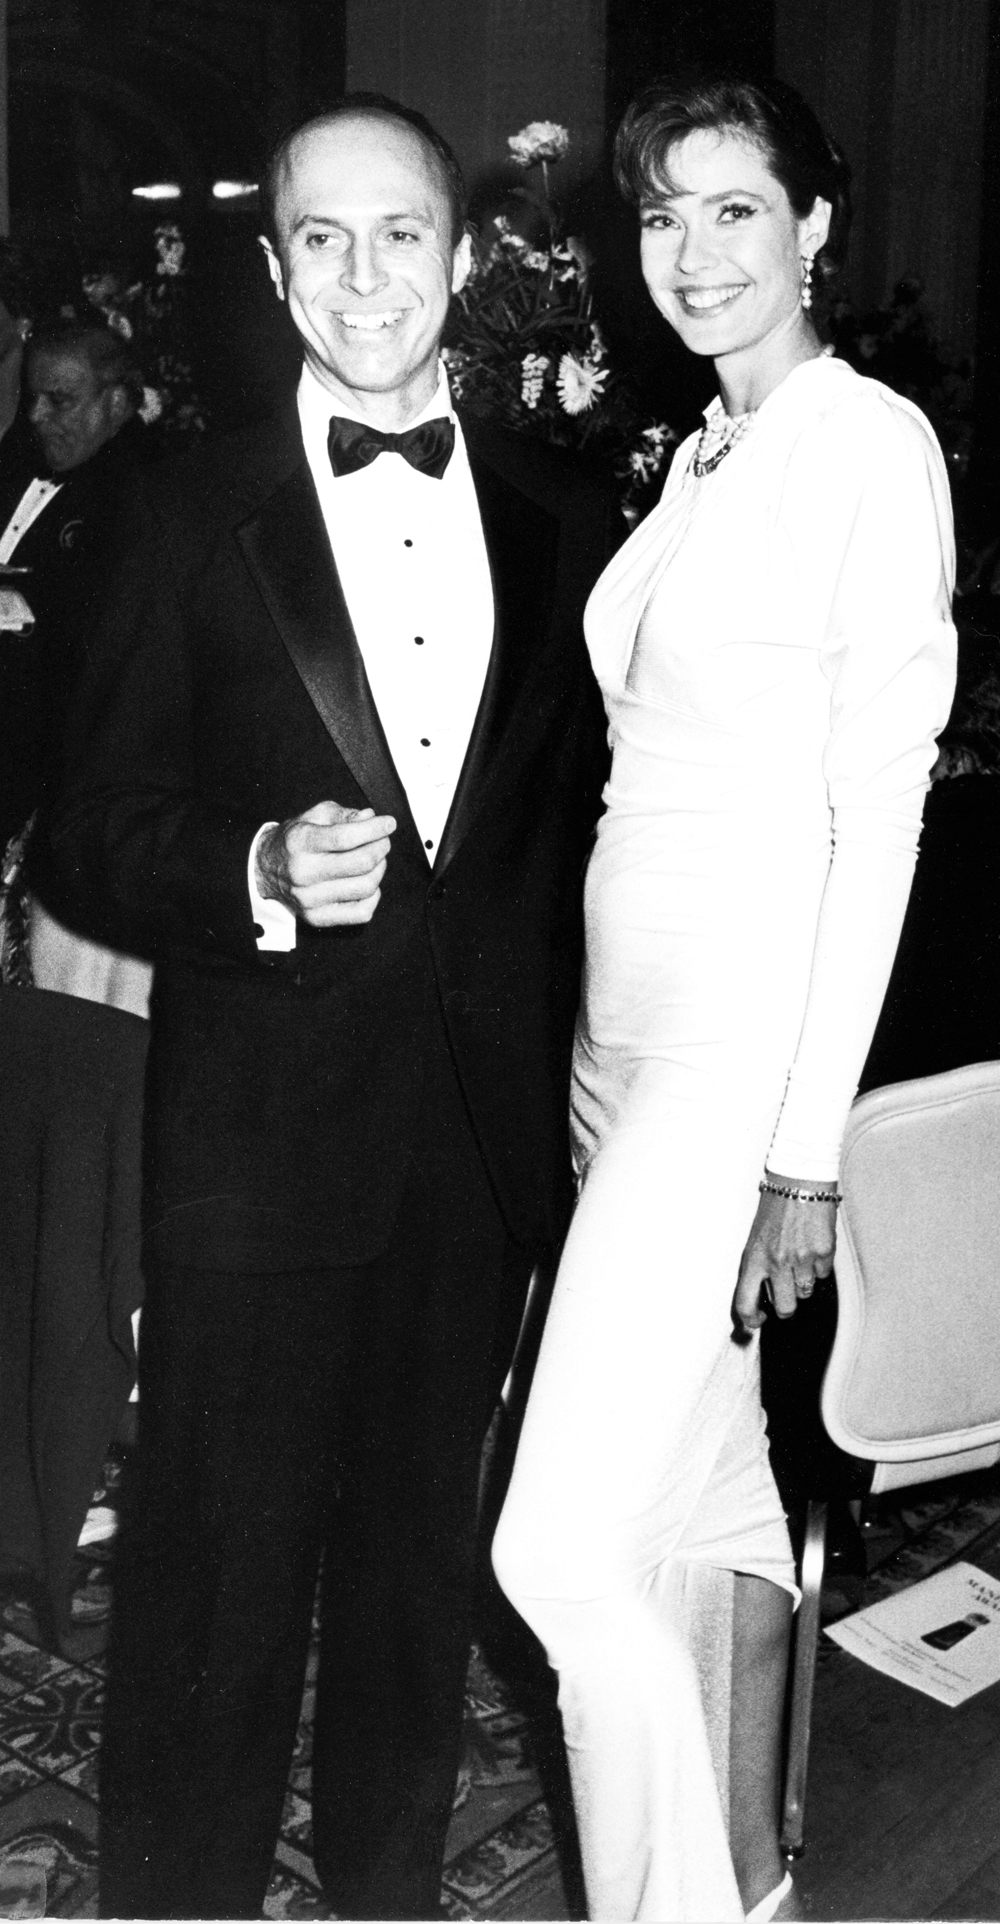 At his charity events over the years ... Rick Bard with supermodel Carol Alt